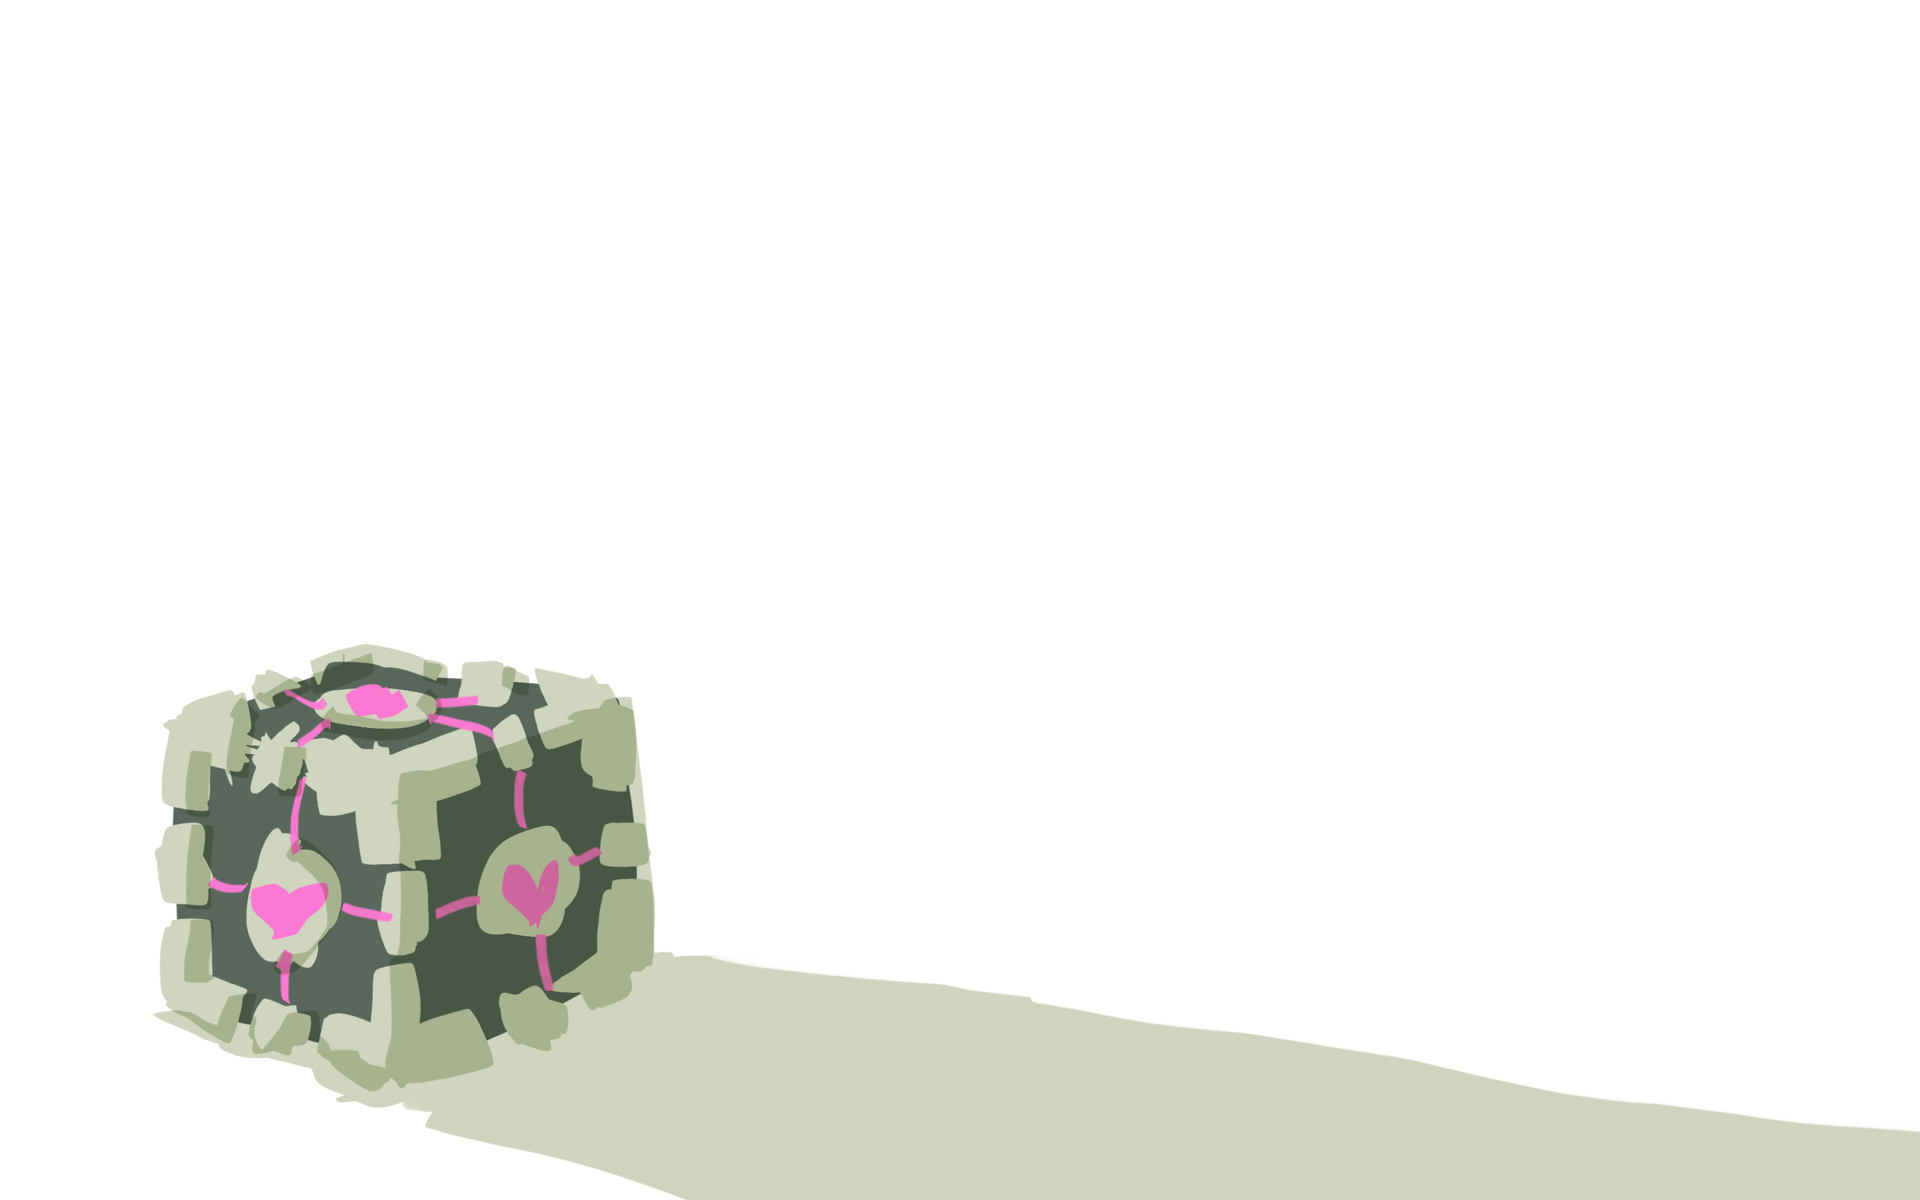 Portal Companion Cube weighted HD Wallpaper